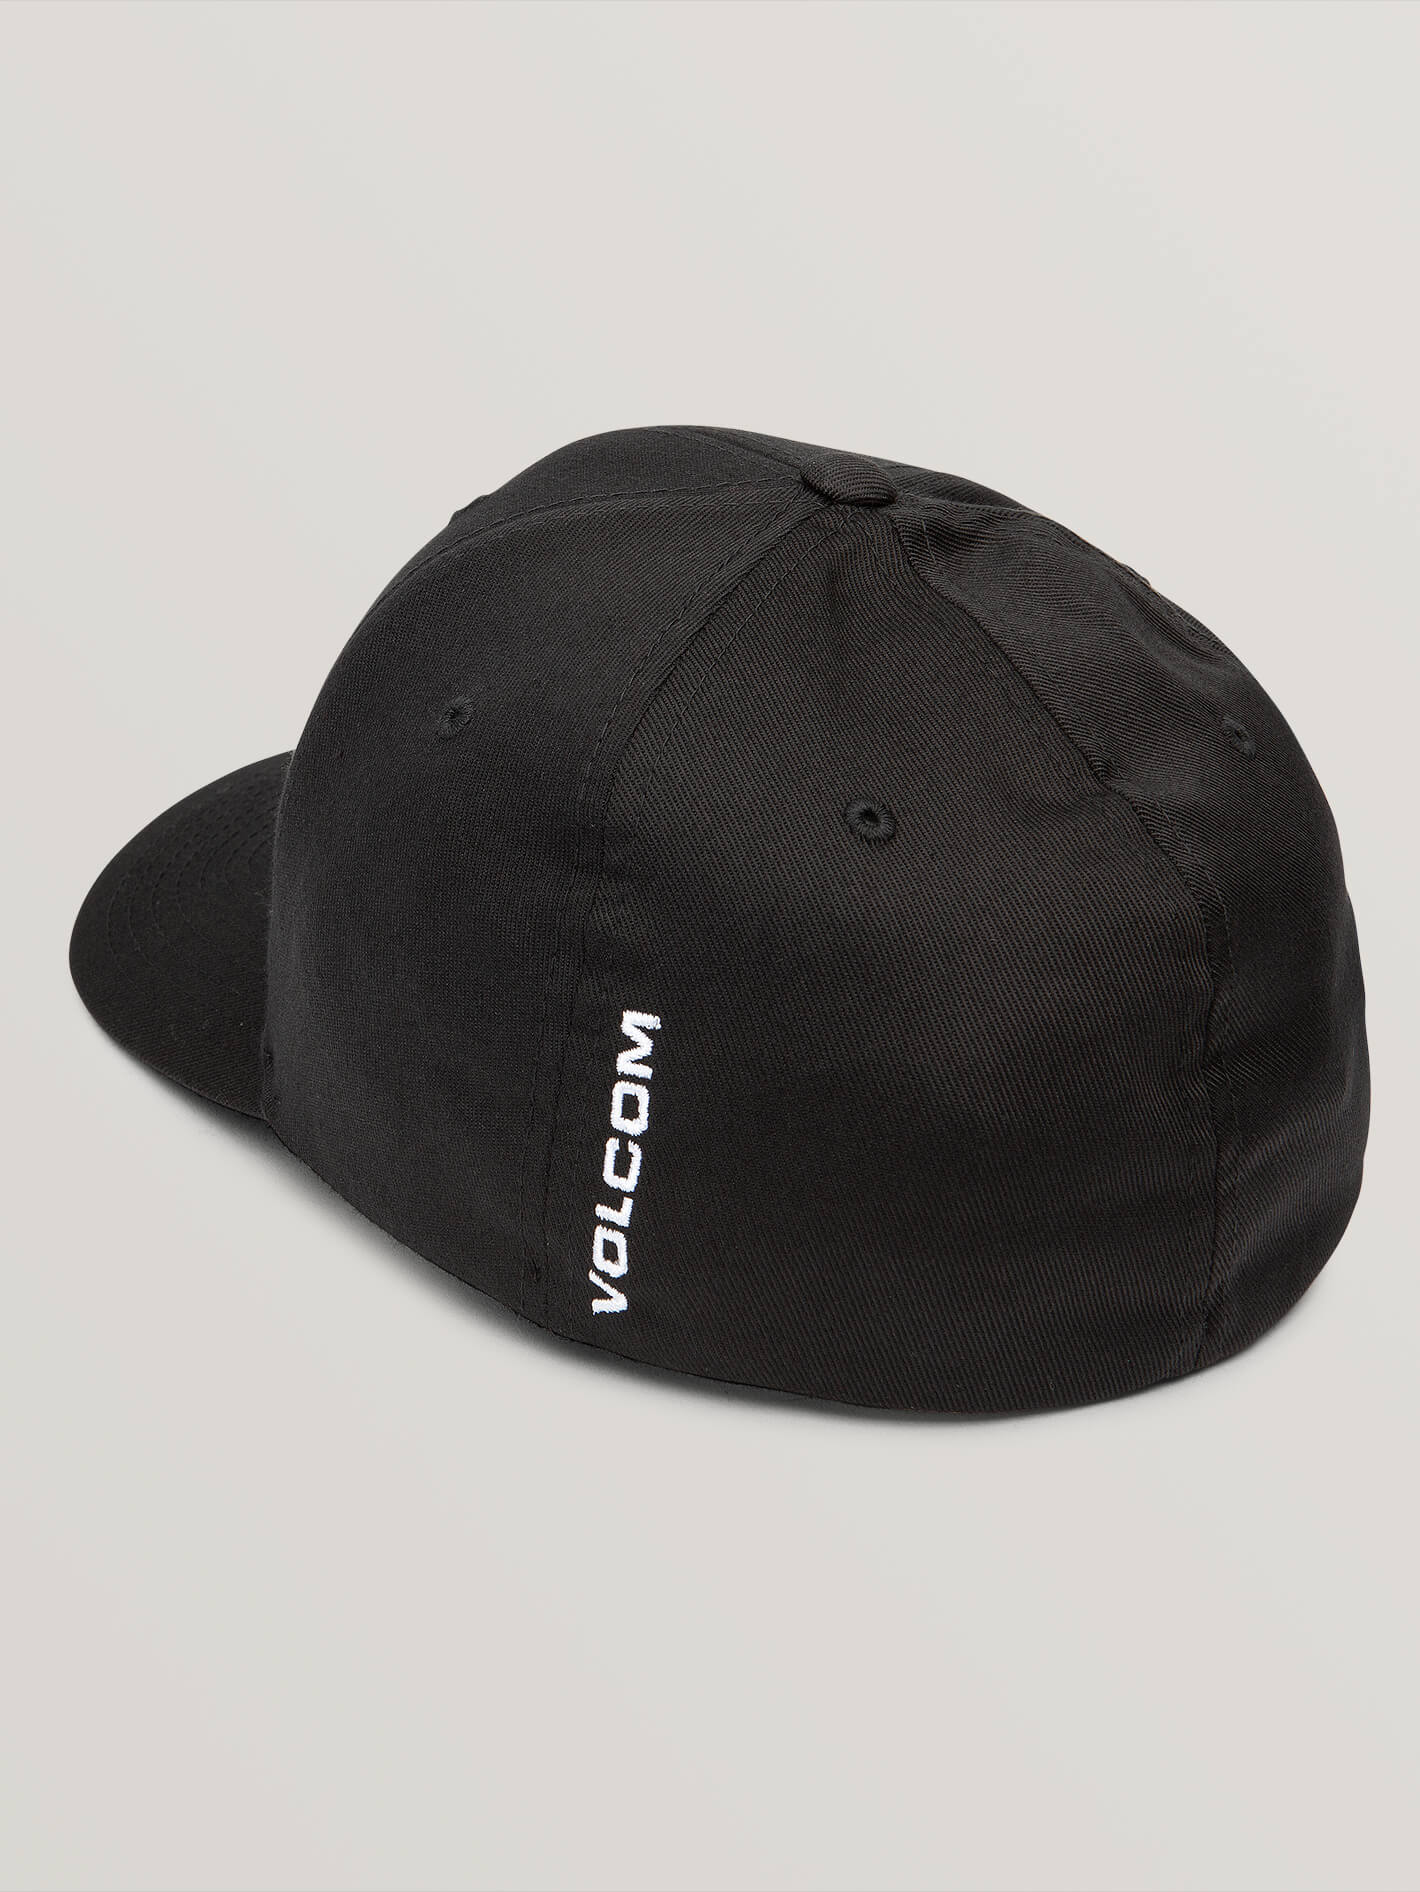 382f1a9a36da13 Full Stone XFit Hat - Black in BLACK - Alternative View